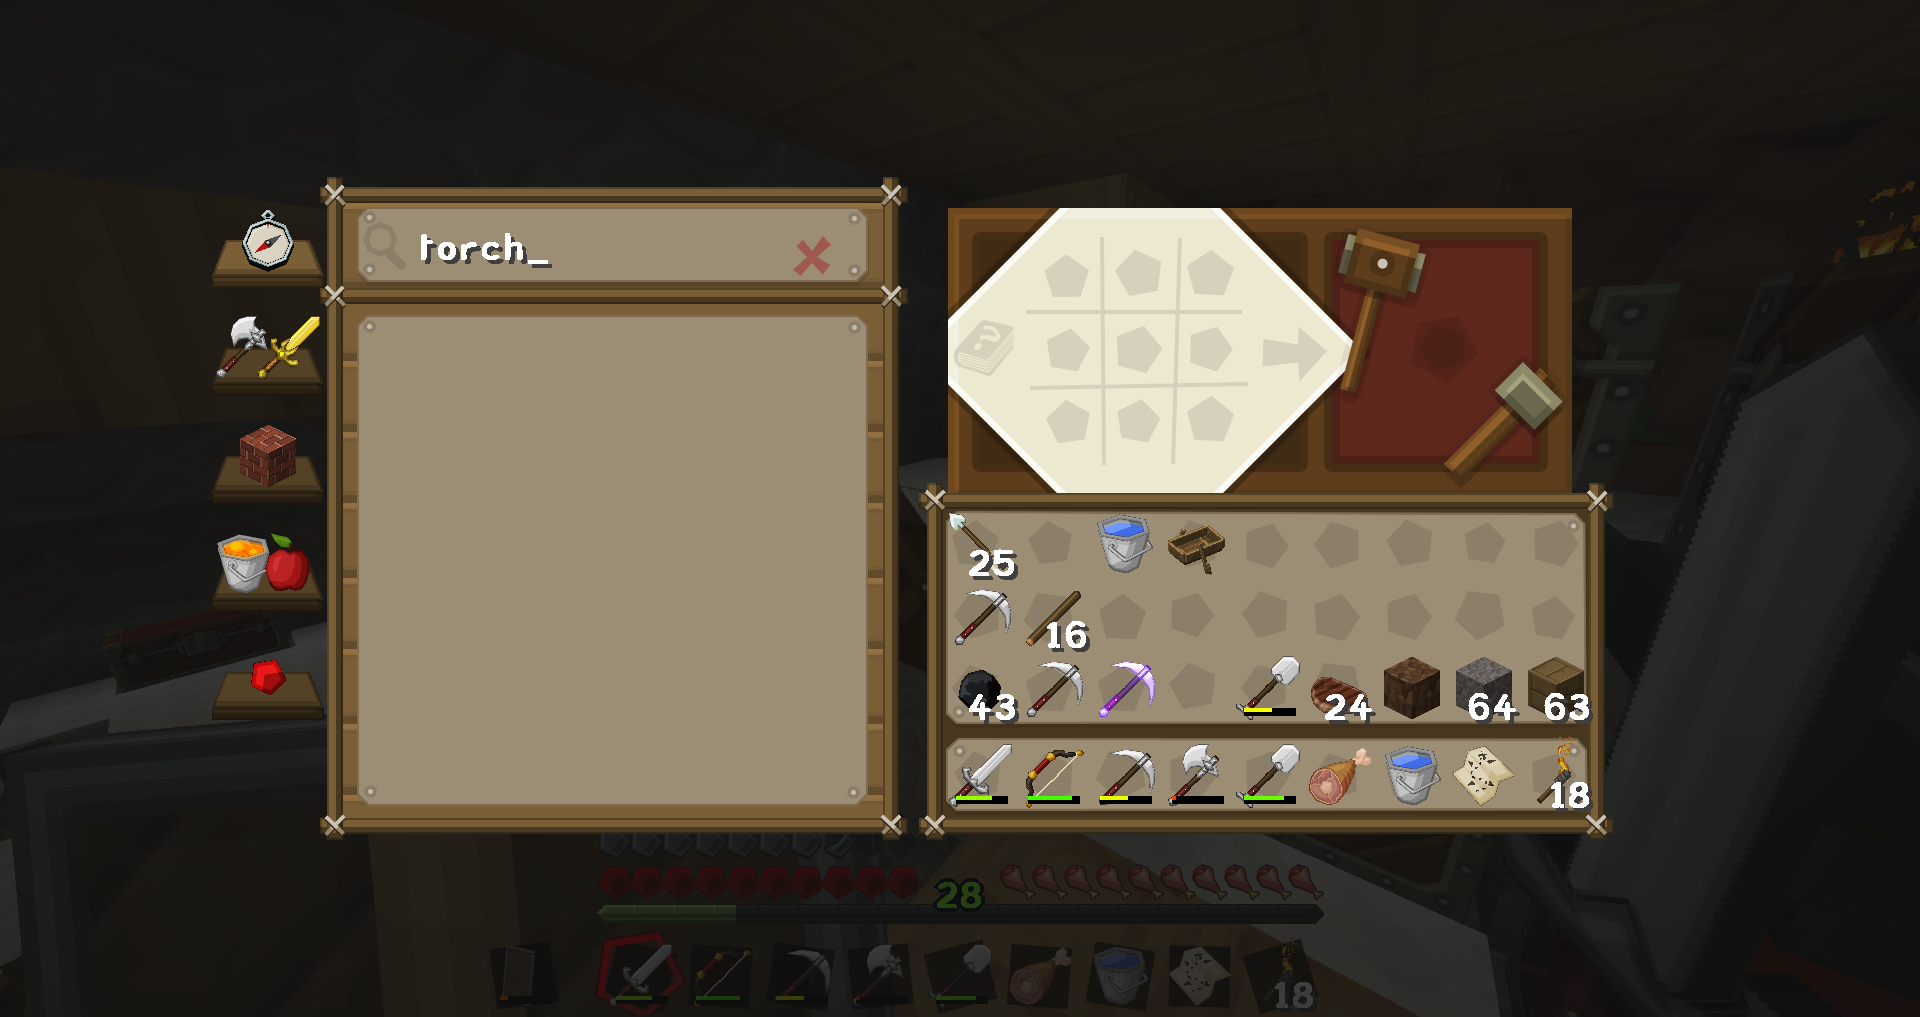 1 12] Crafting Recipe Search Not Working - Support & Bug Reports